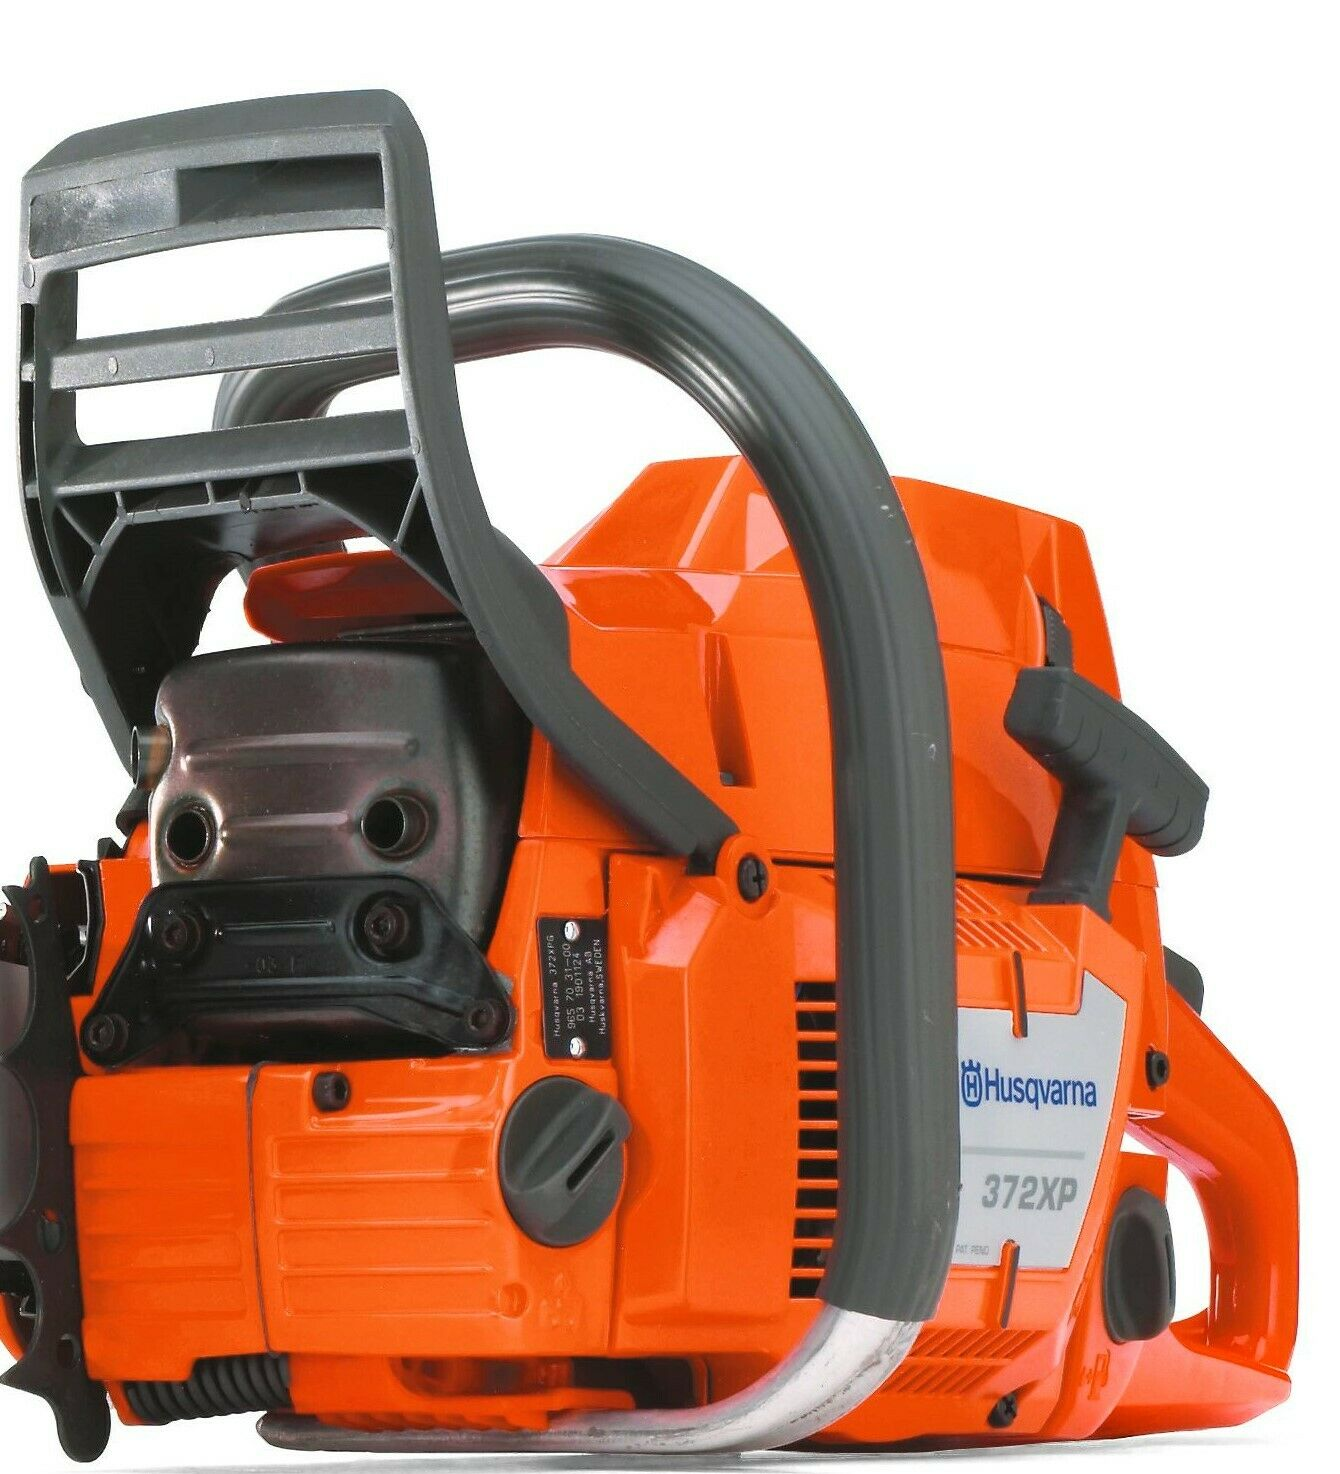 Husqvarna 372XP Chainsaw Power Head Only. Available Now for 920.00